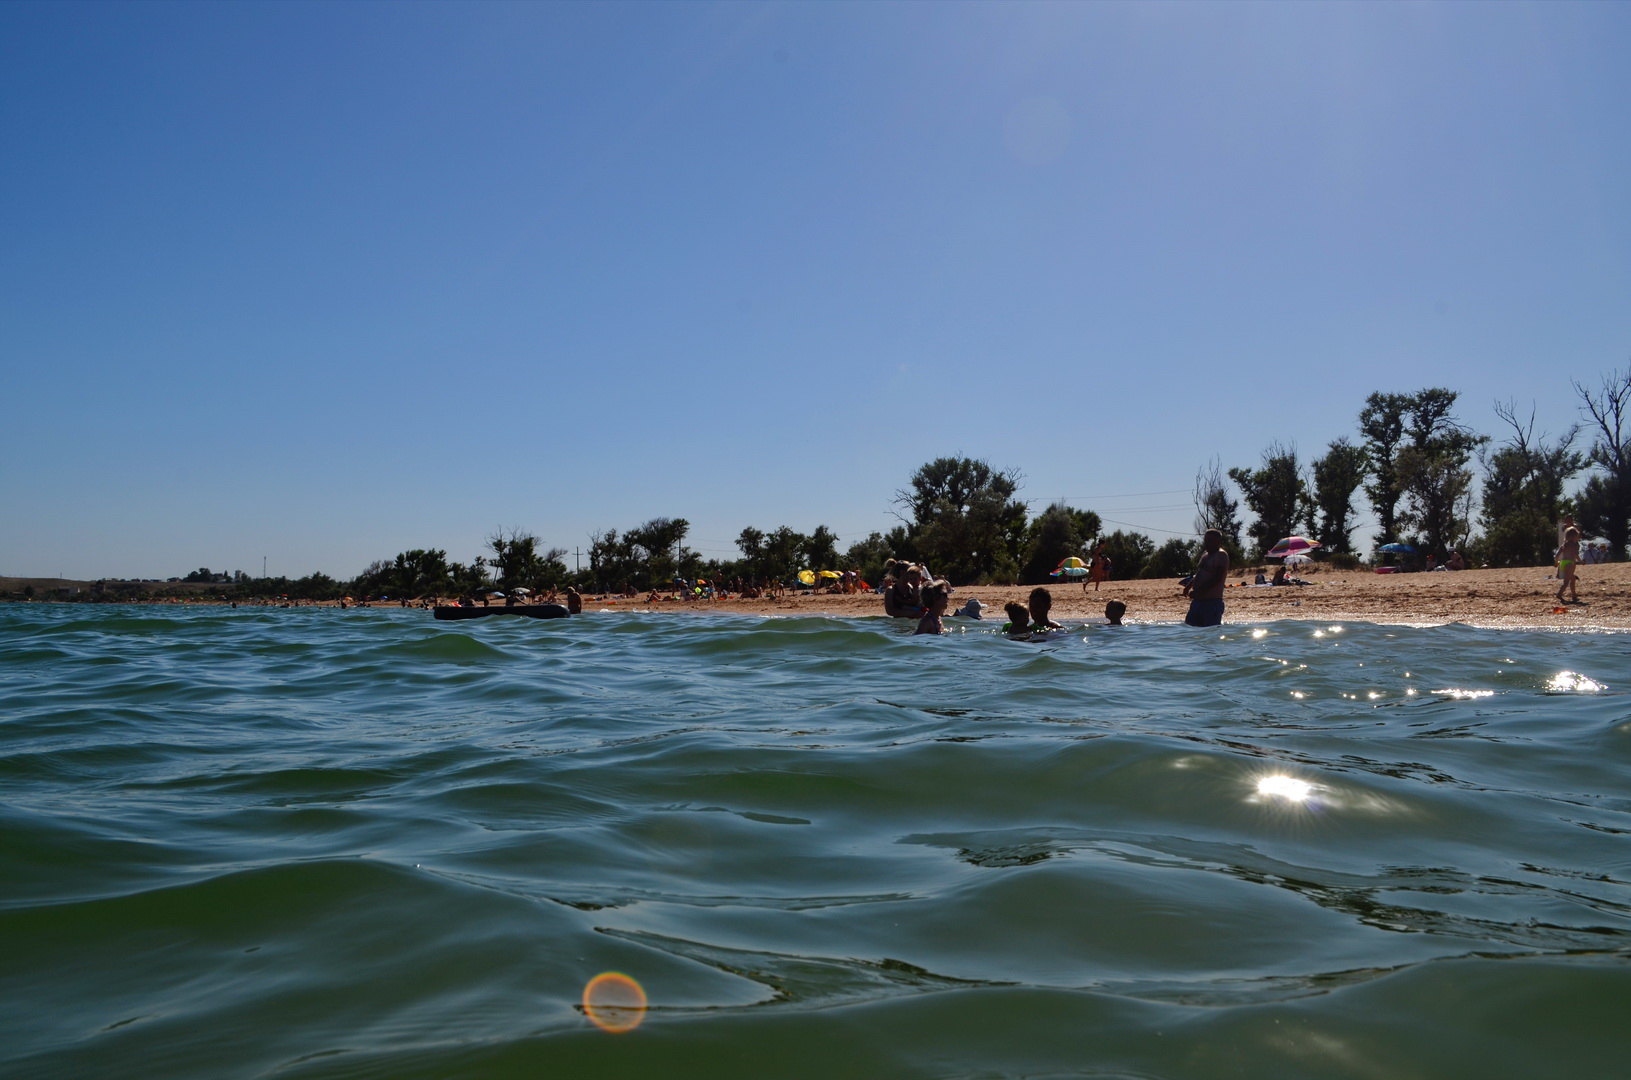 kerch beach 28 06 2020 8